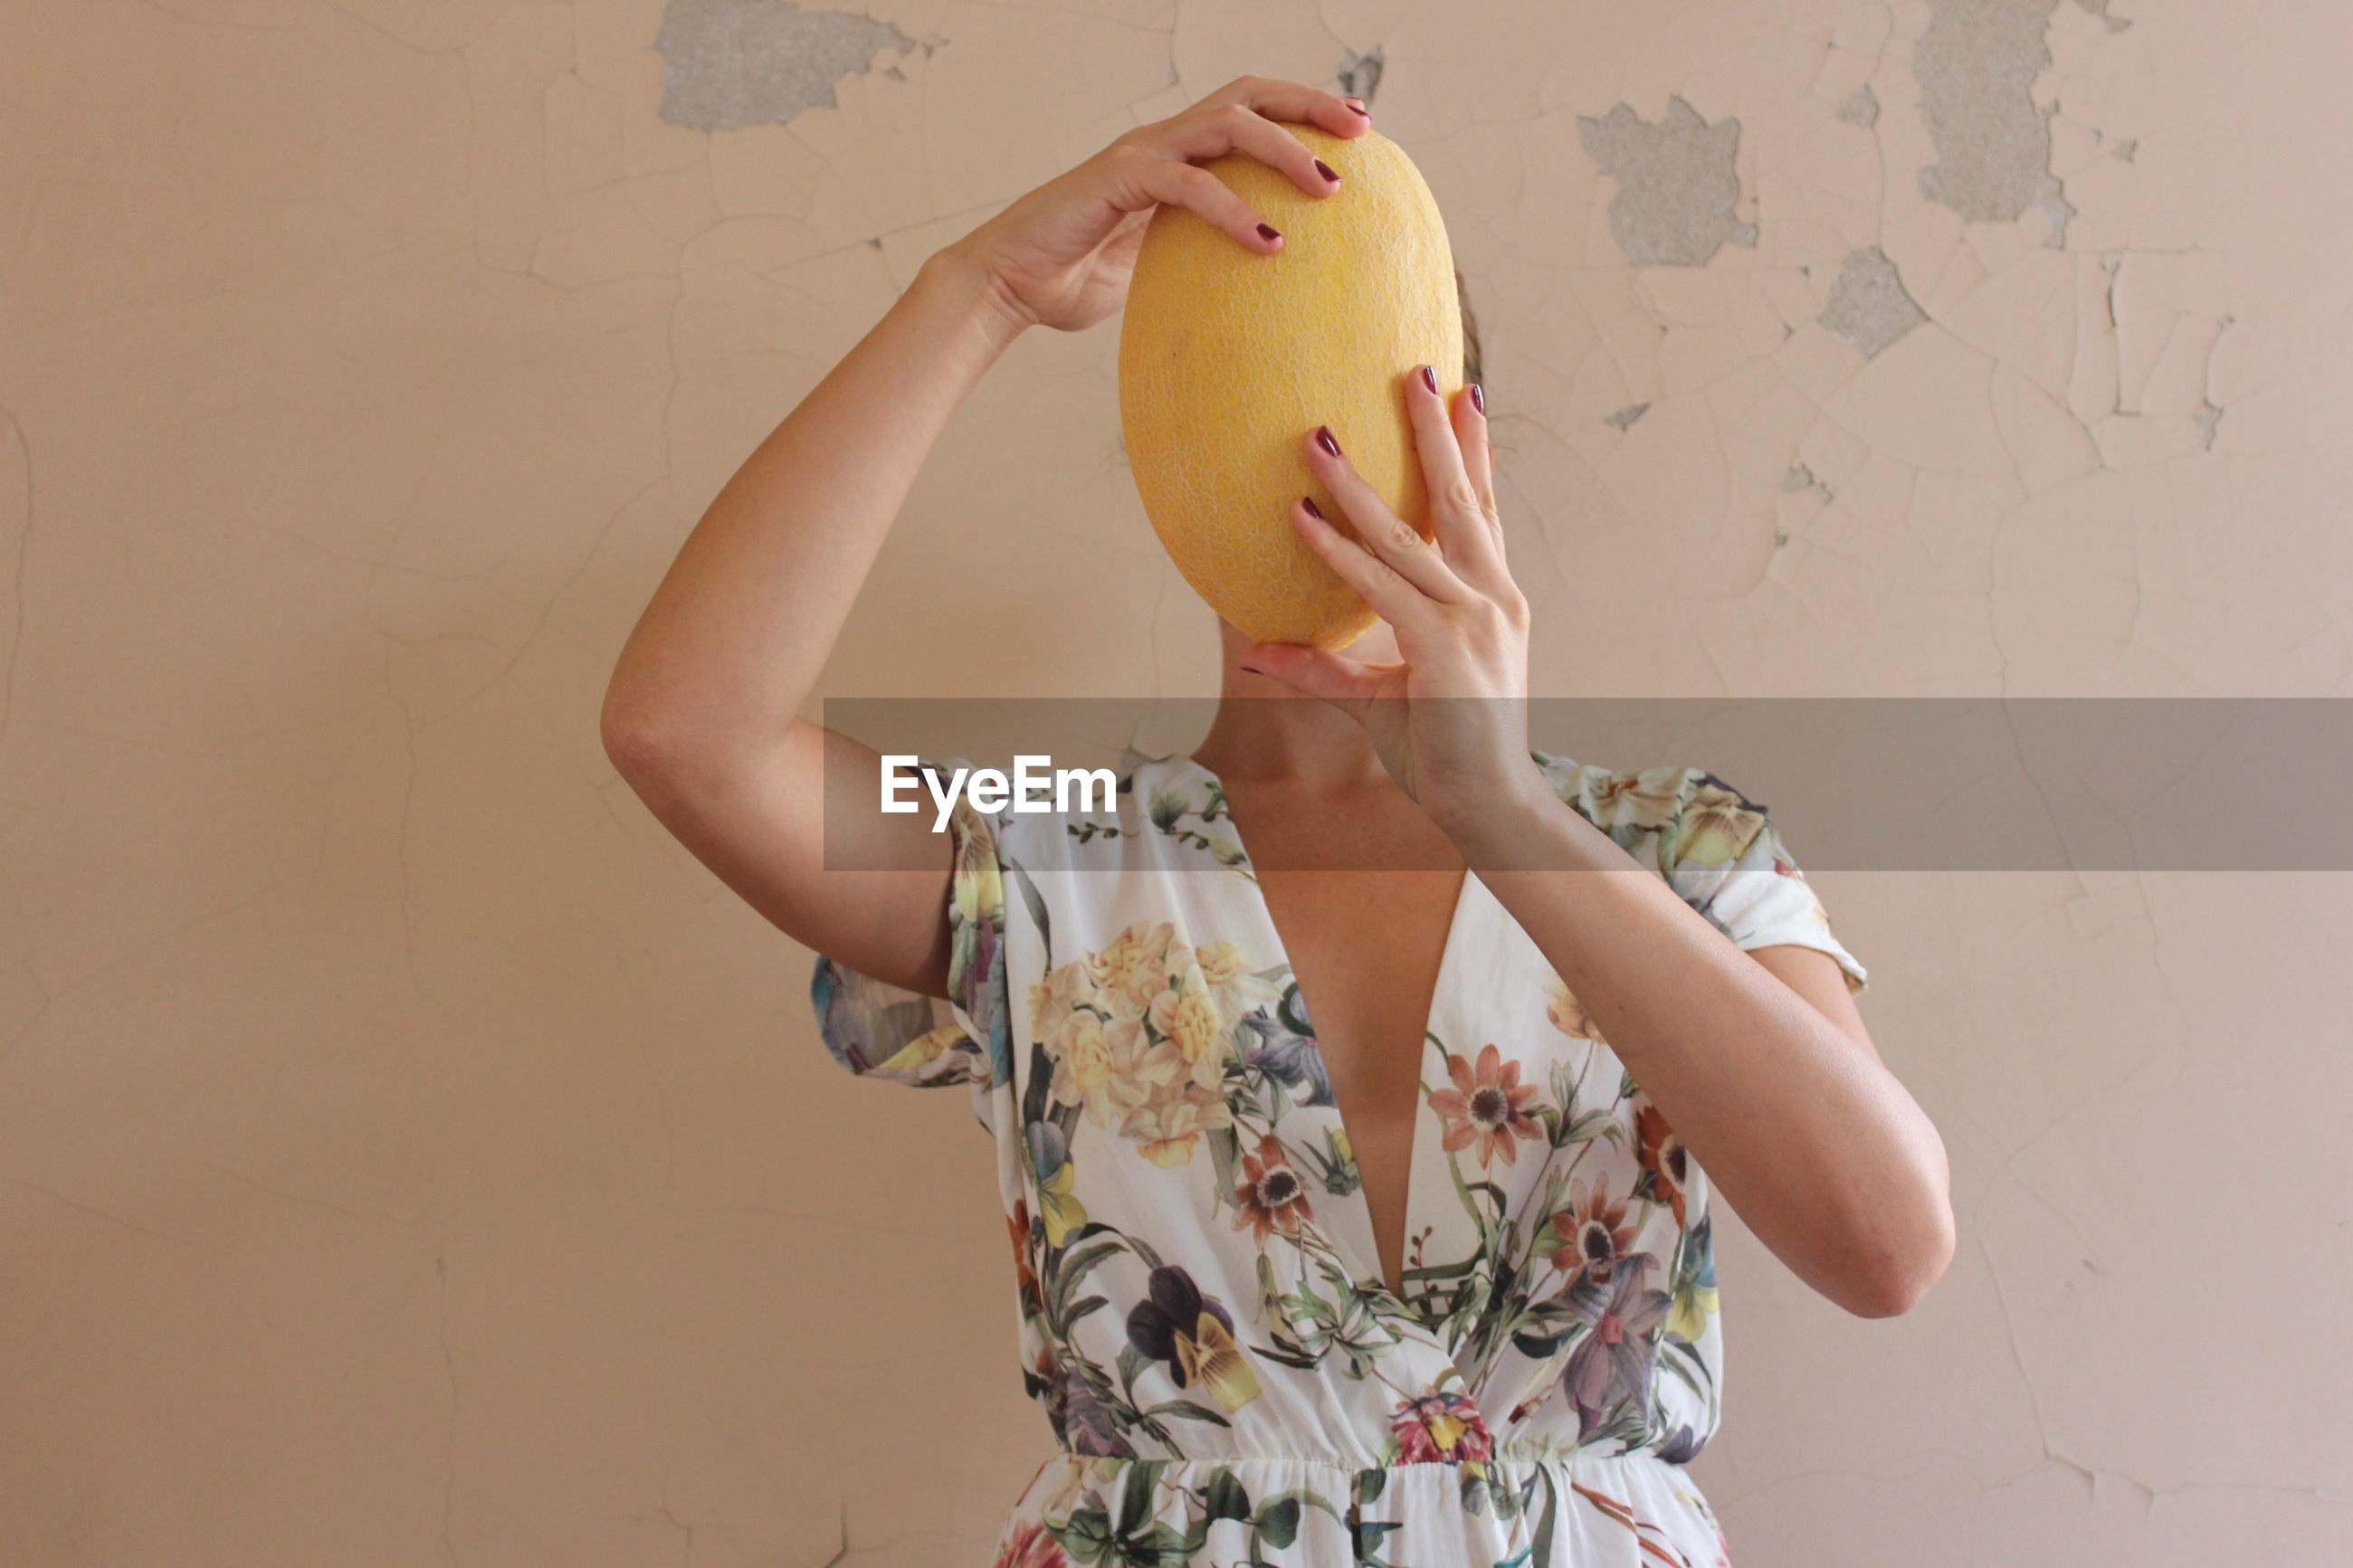 MIDSECTION OF WOMAN STANDING AGAINST ORANGE WALL